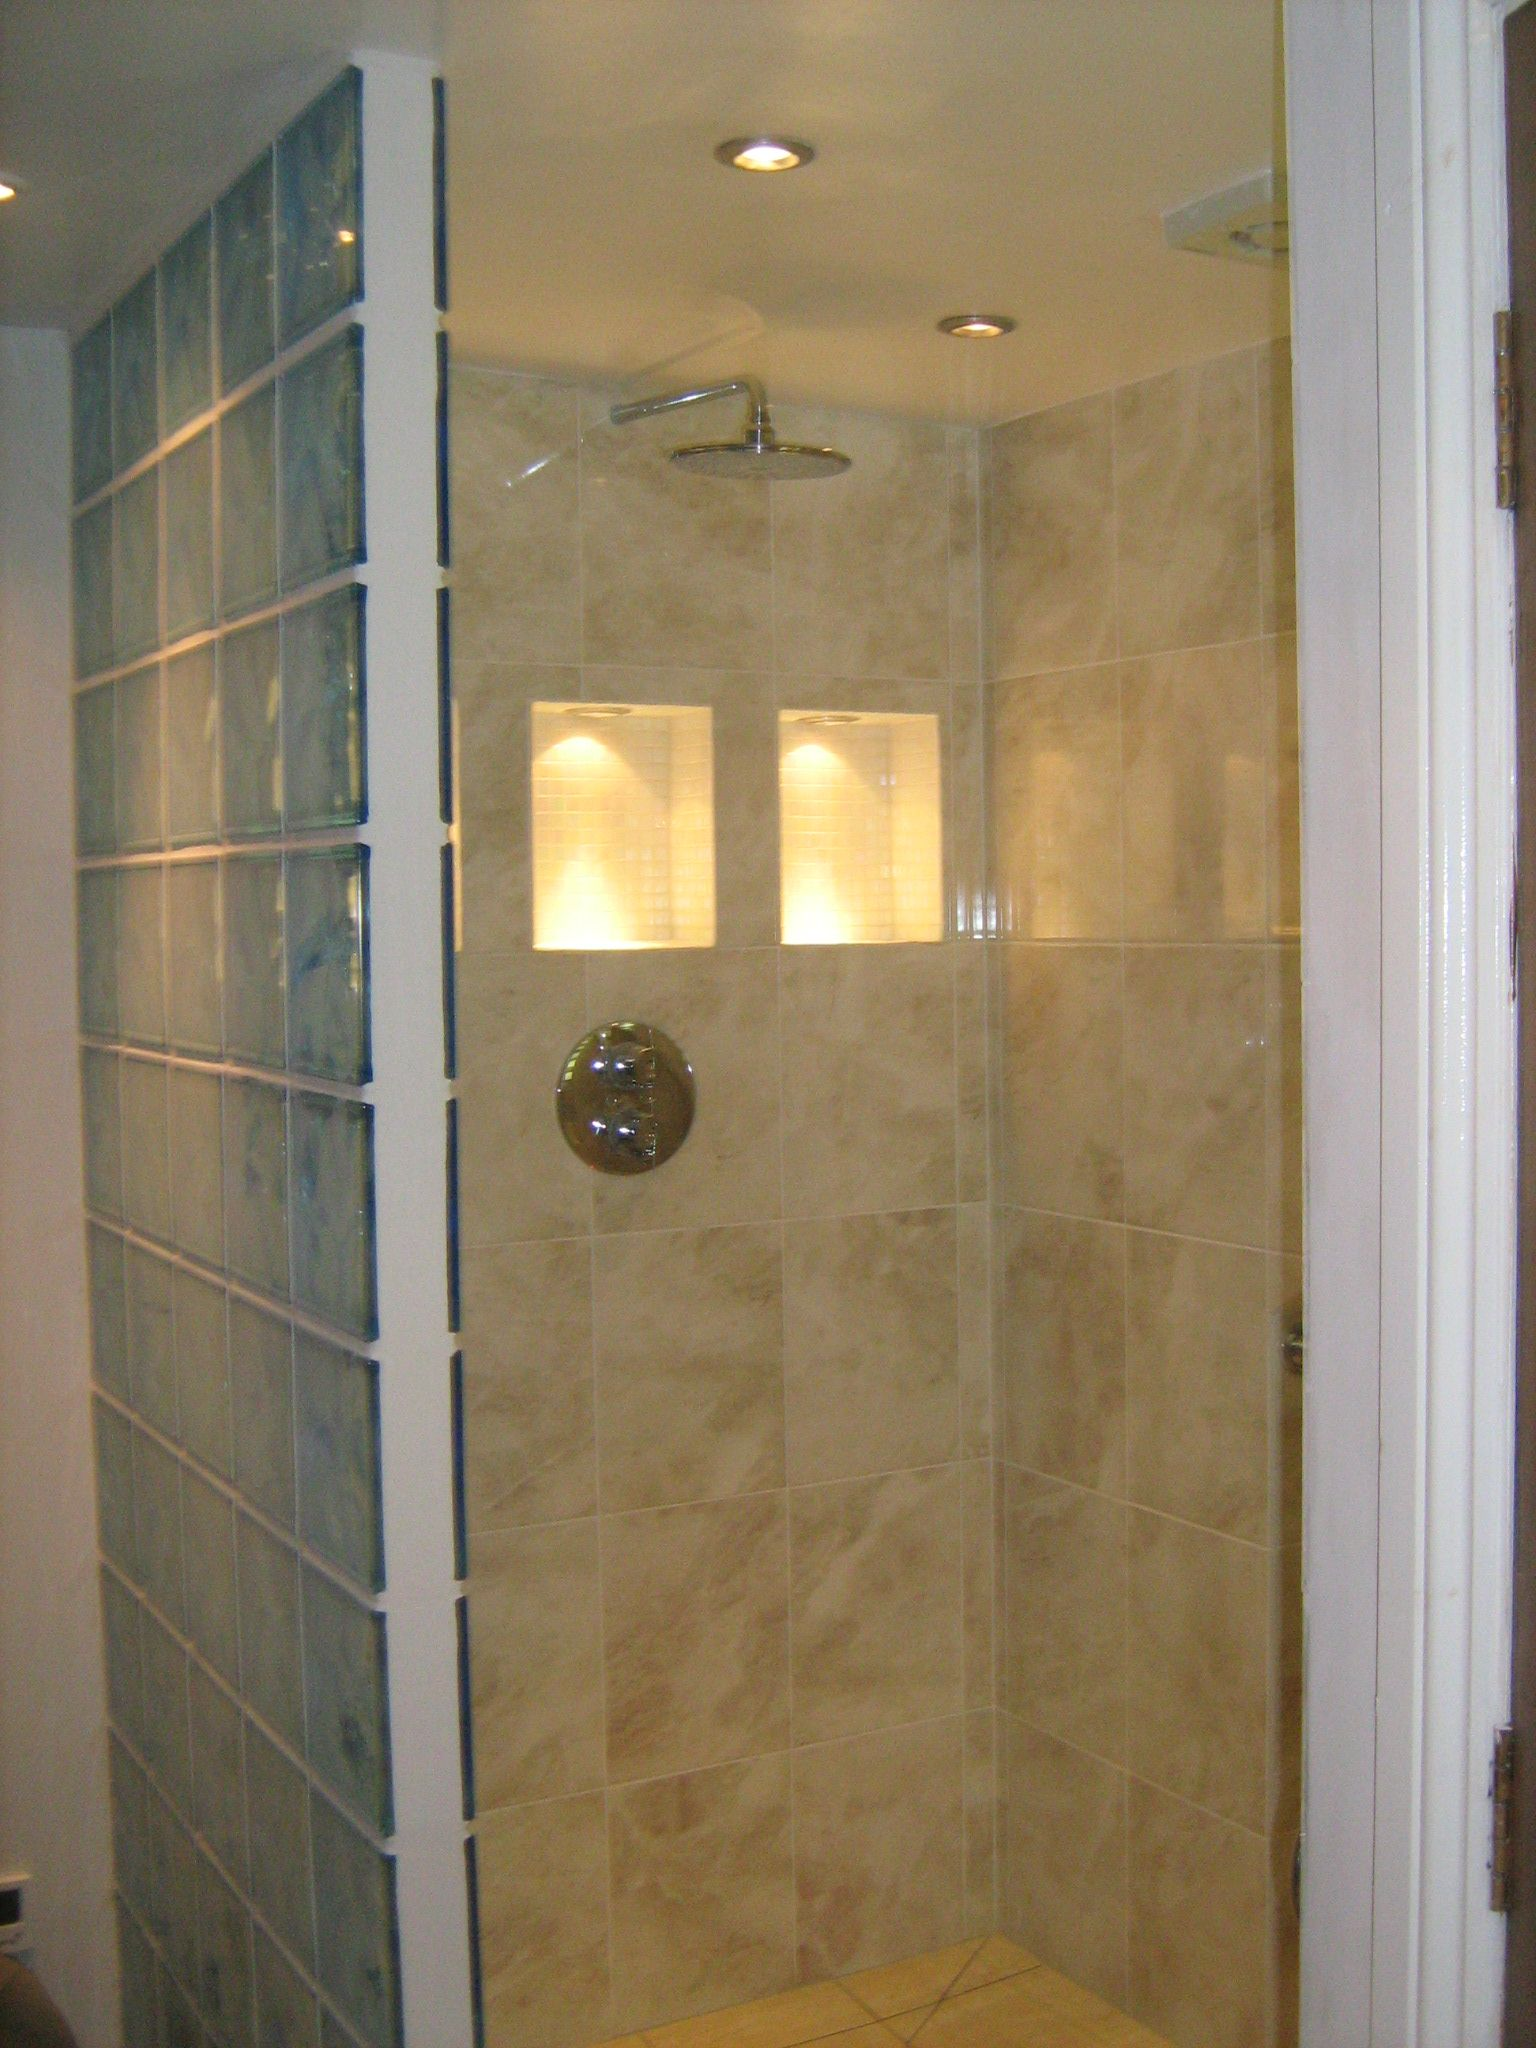 wet room | wet room | Glass block shower divider. | Poolhouse ...